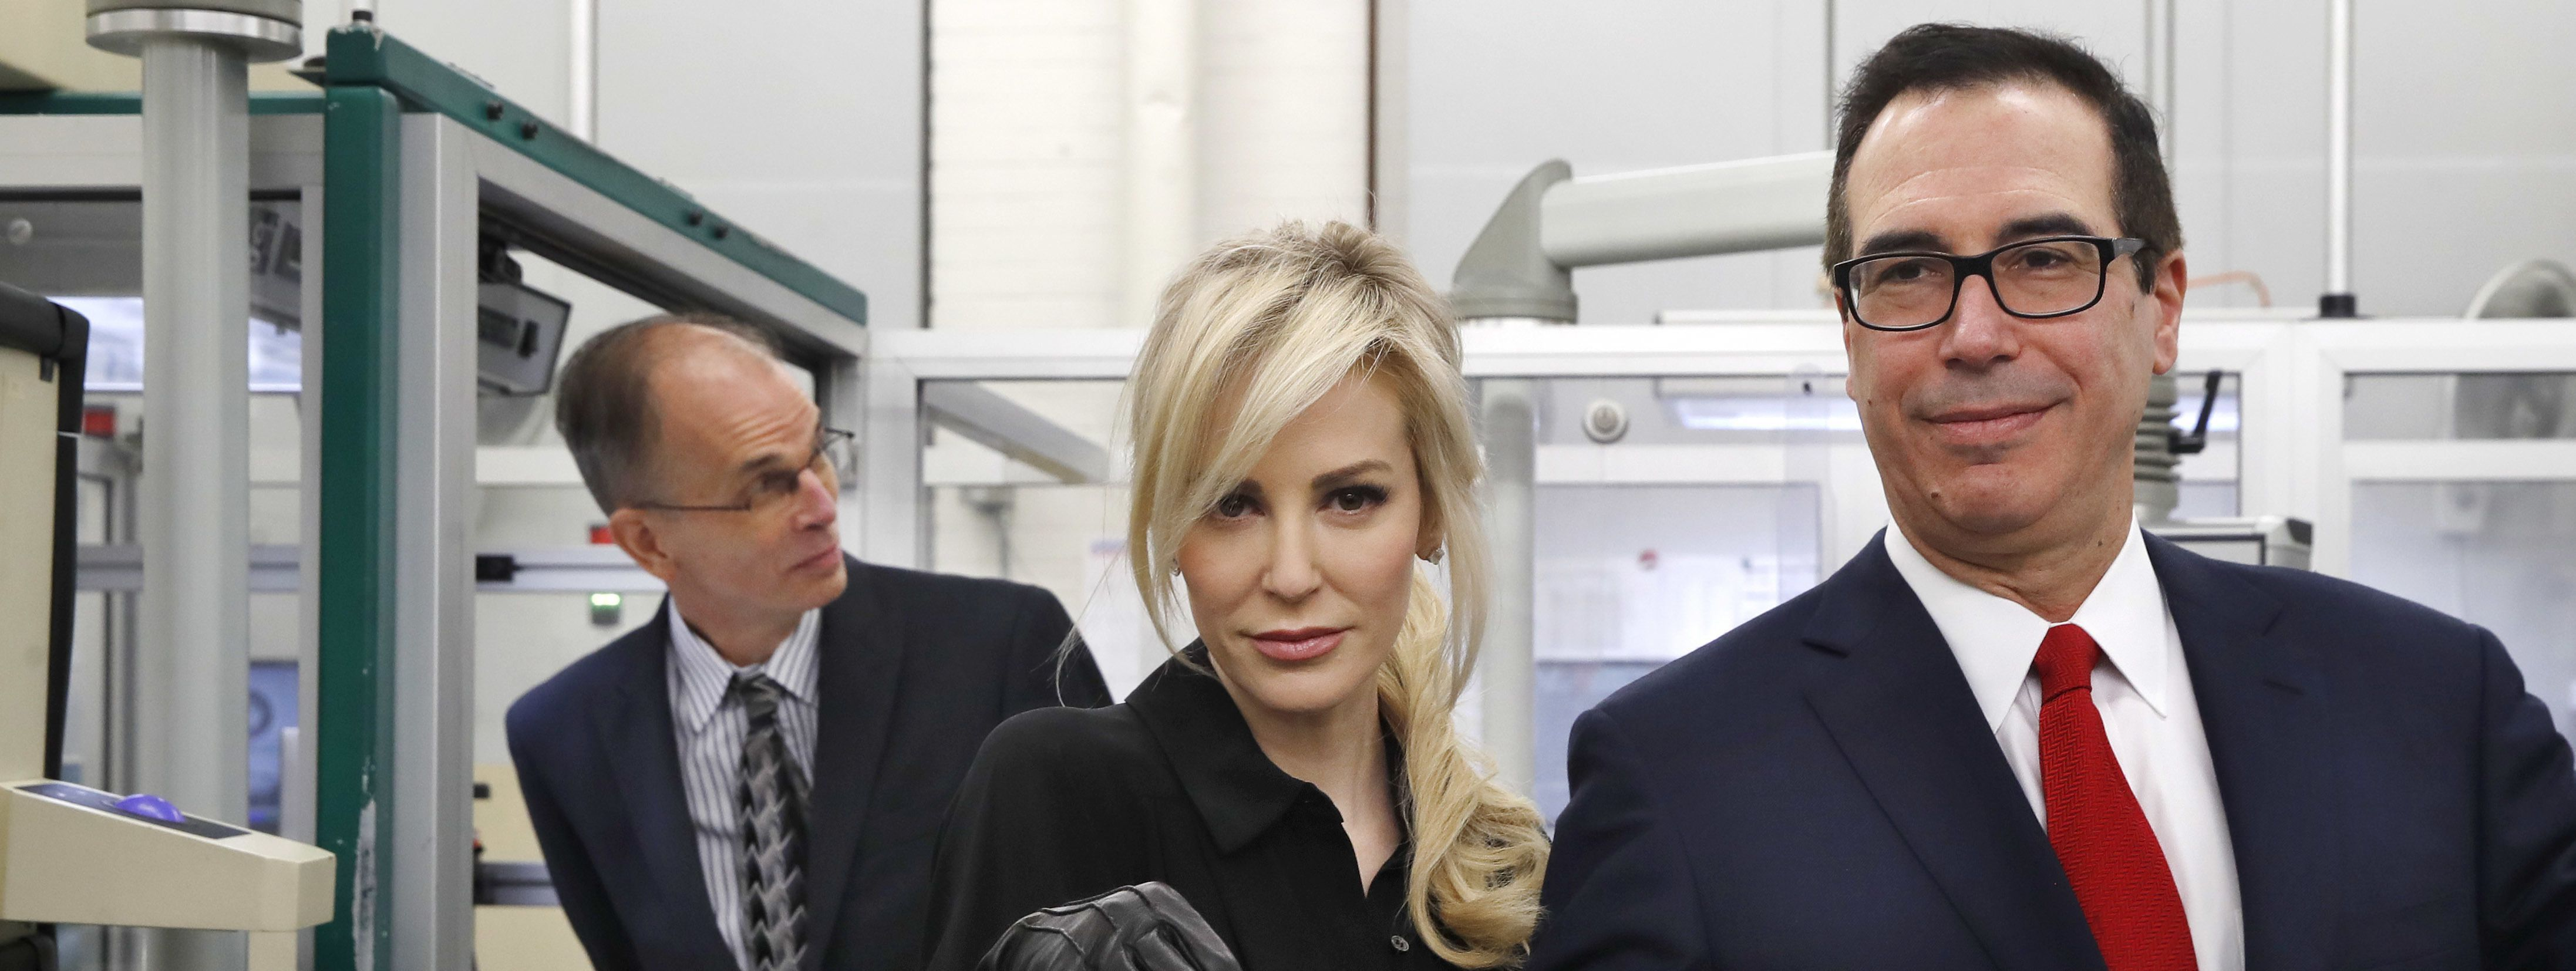 Louise Linton And Steven Mnuchin Holding Money